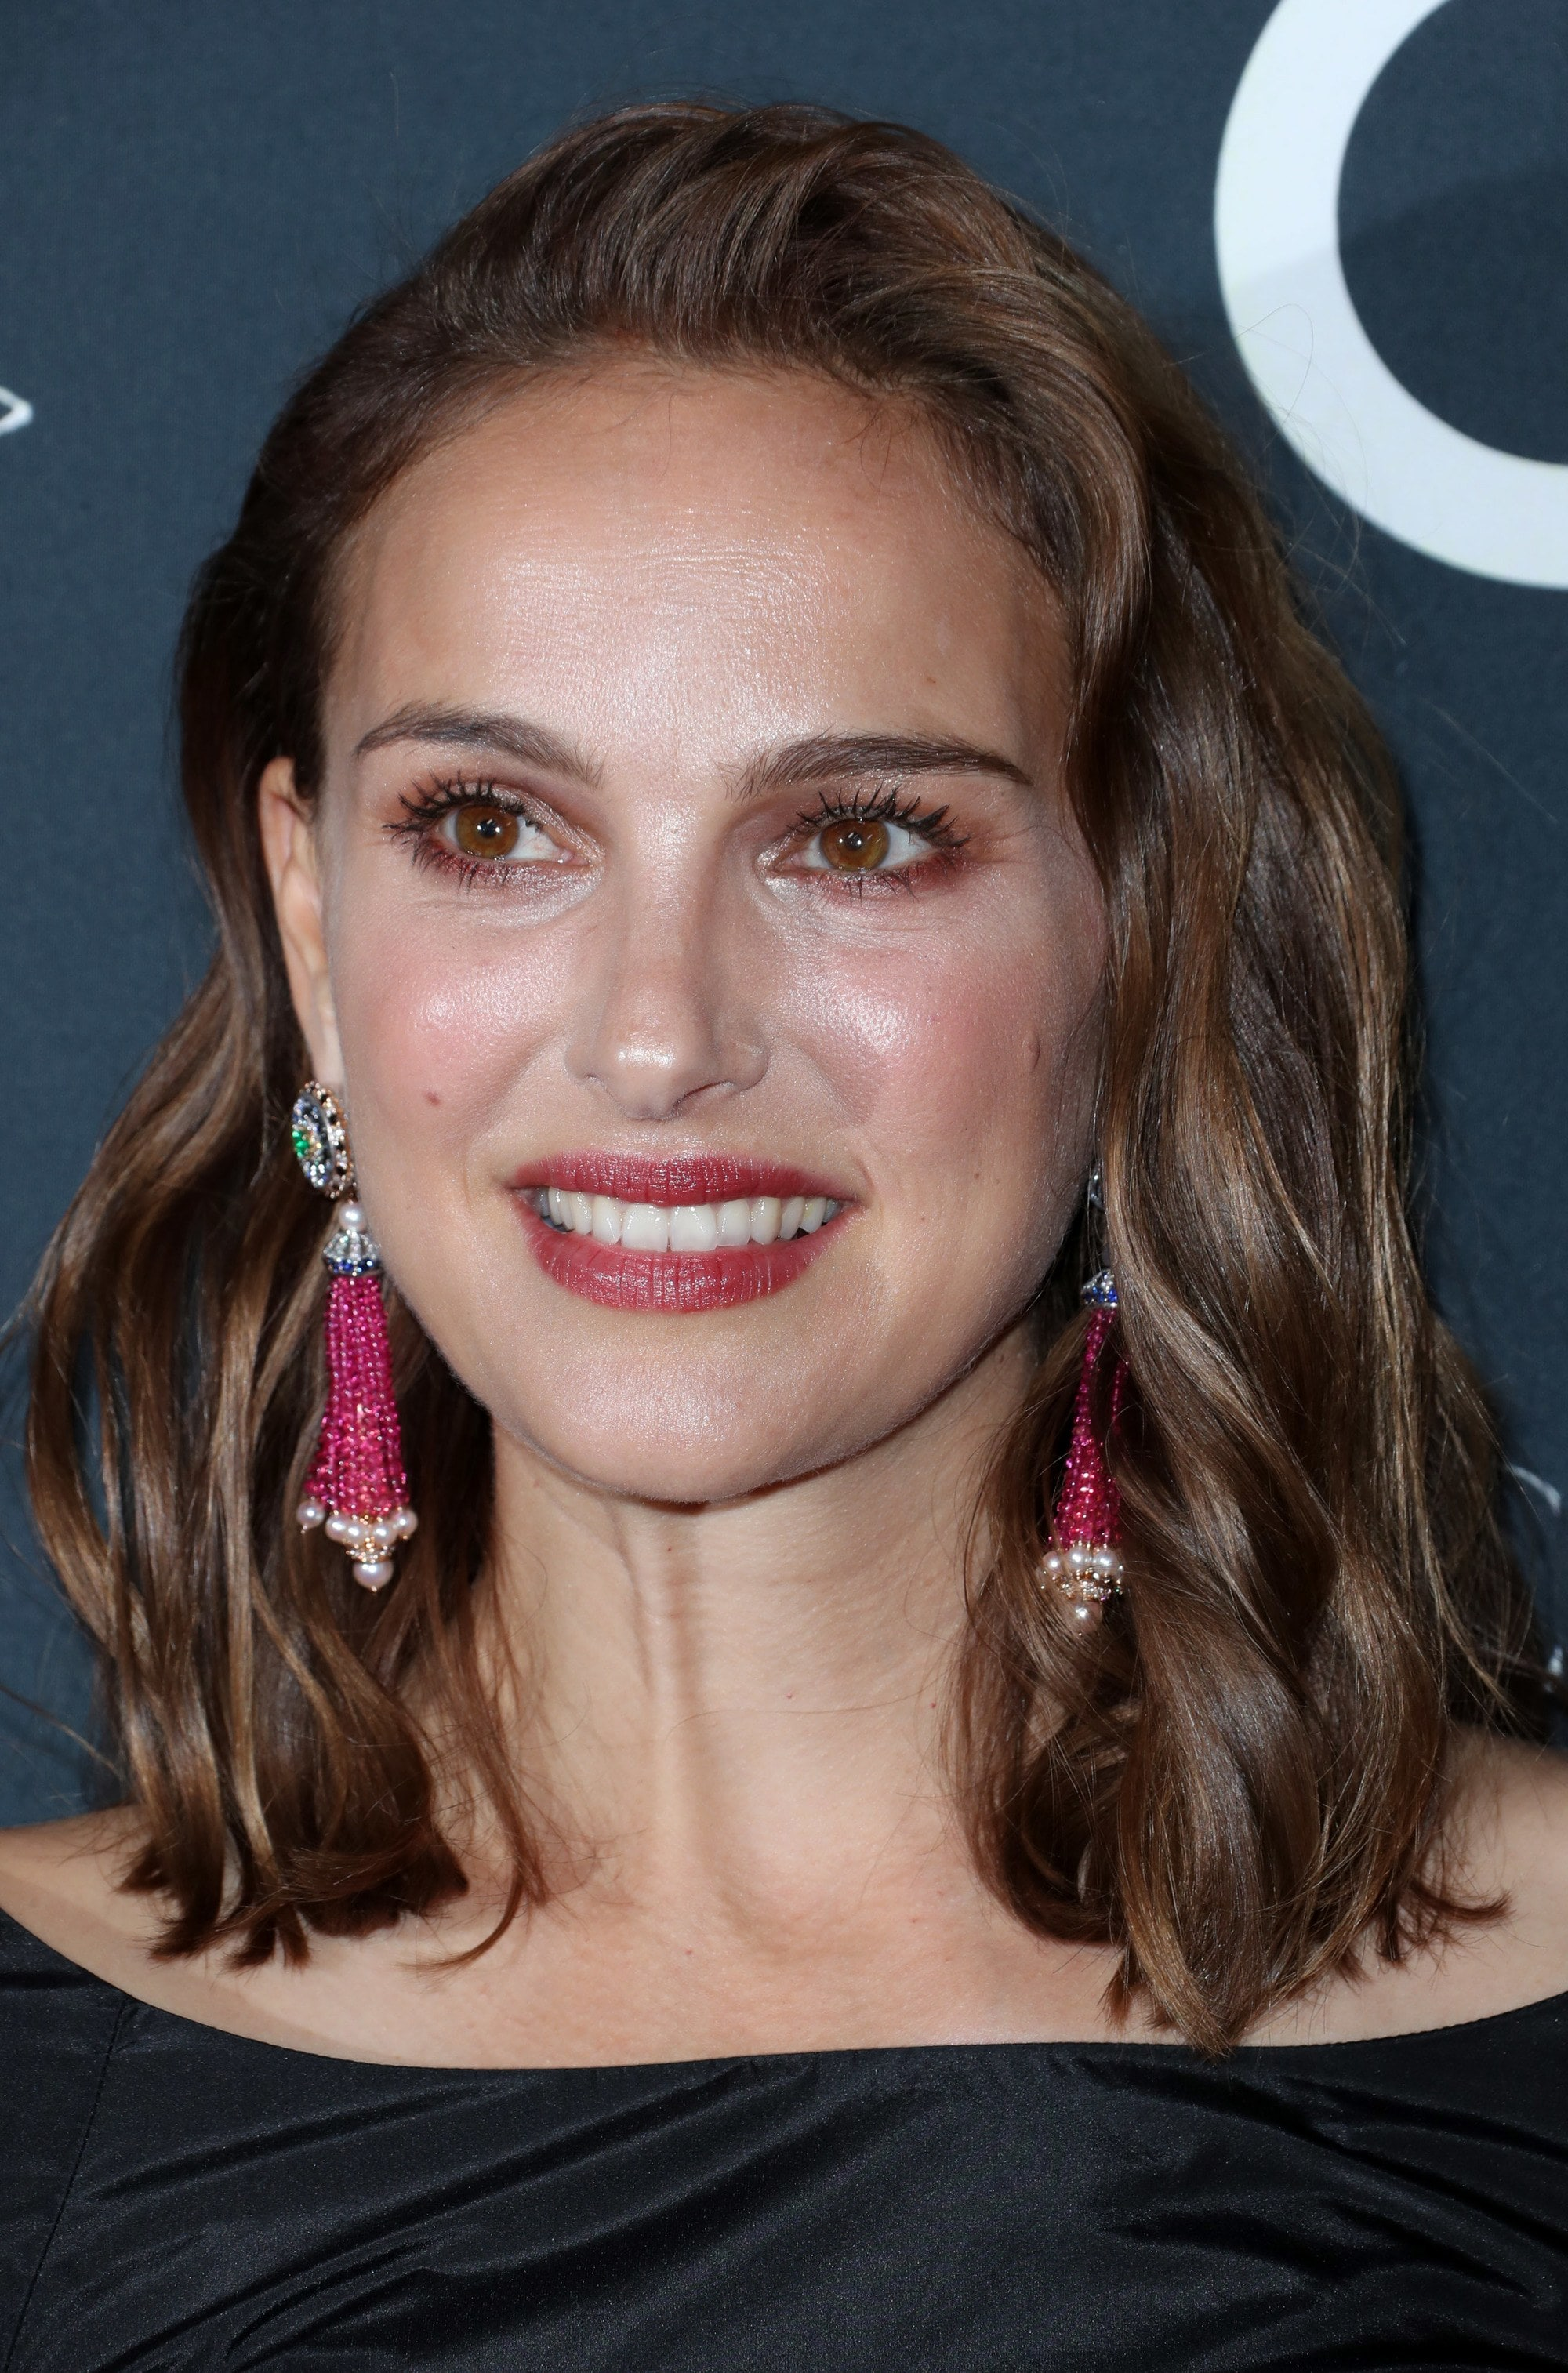 Medium hairstyles for thick hair: Natalie Portman with mid-length medium brown hair styled in undone waves